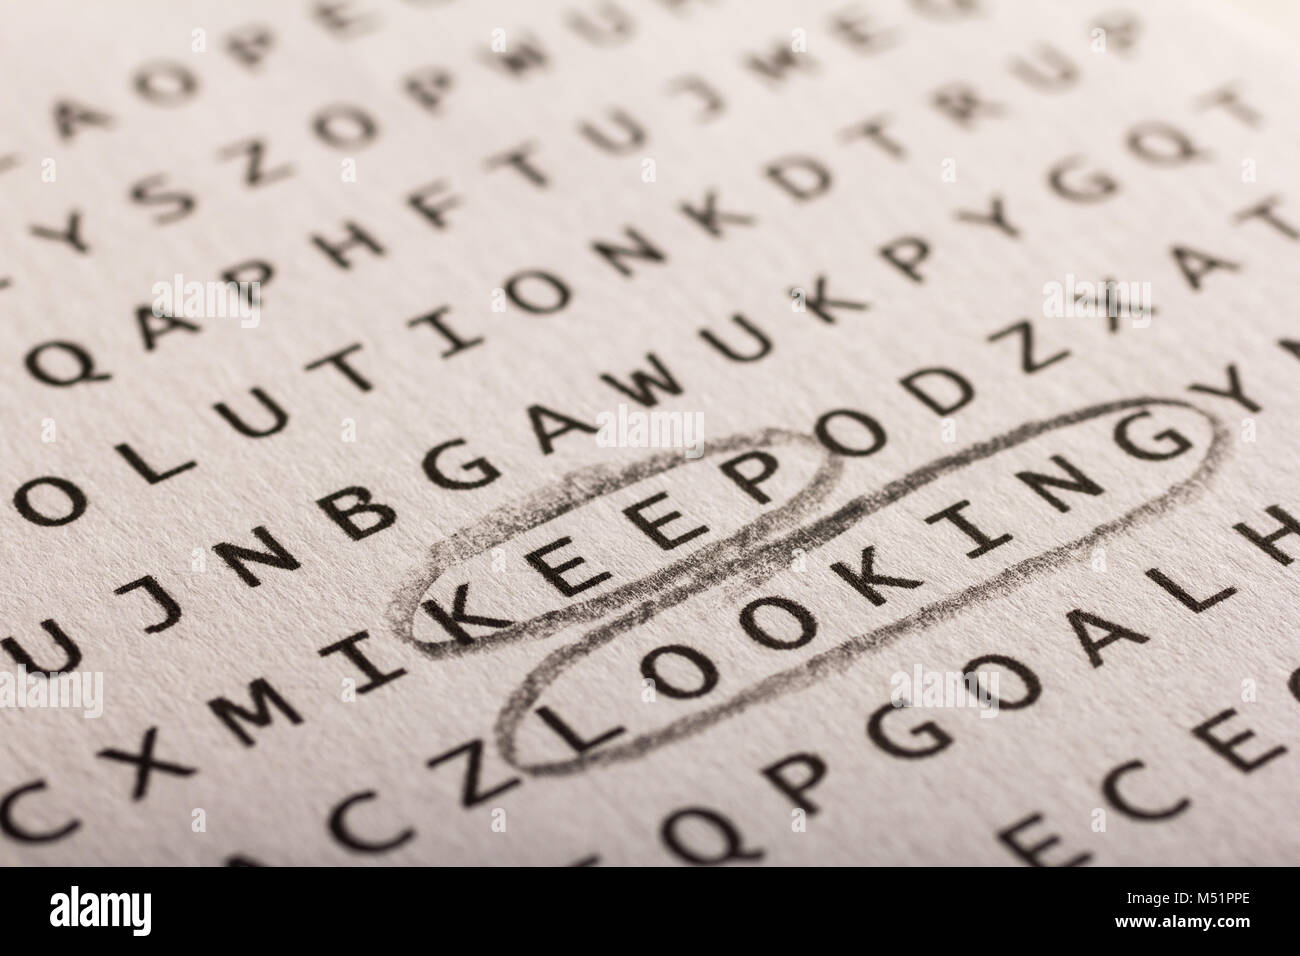 Word search, puzzle. Close up of letters on canvas. Concept about finding, keep looking, persistence. - Stock Image